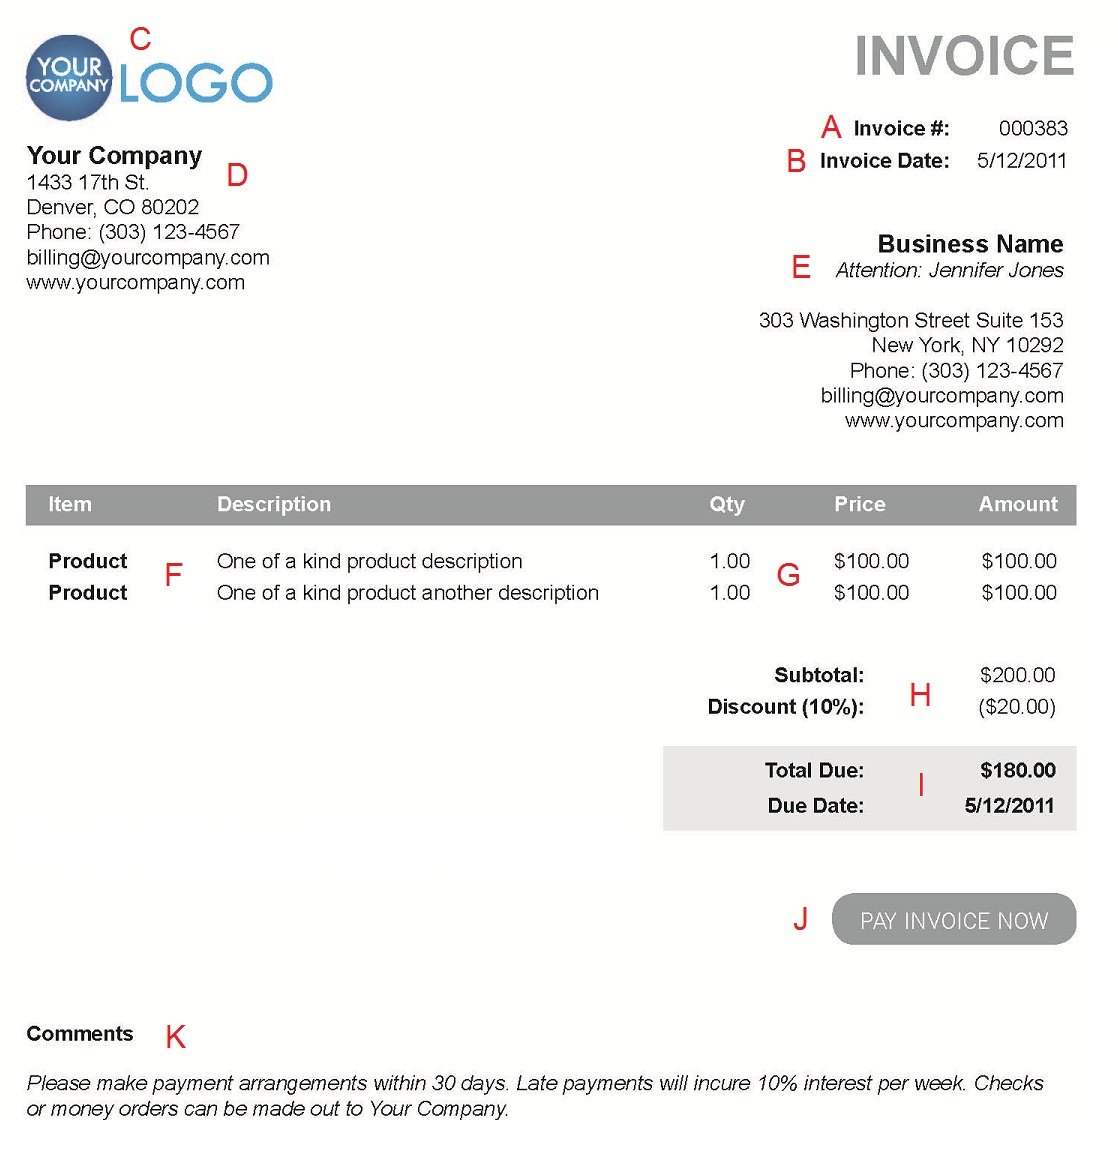 Patriotexpressus  Winning The  Different Sections Of An Electronic Payment Invoice With Outstanding A  With Comely Format Of Invoice Also Download Invoice Template Free In Addition How To Print Invoice And Invoice Example Doc As Well As Basic Invoice Template Microsoft Word Additionally Invoice Template Free Online From Paysimplecom With Patriotexpressus  Outstanding The  Different Sections Of An Electronic Payment Invoice With Comely A  And Winning Format Of Invoice Also Download Invoice Template Free In Addition How To Print Invoice From Paysimplecom